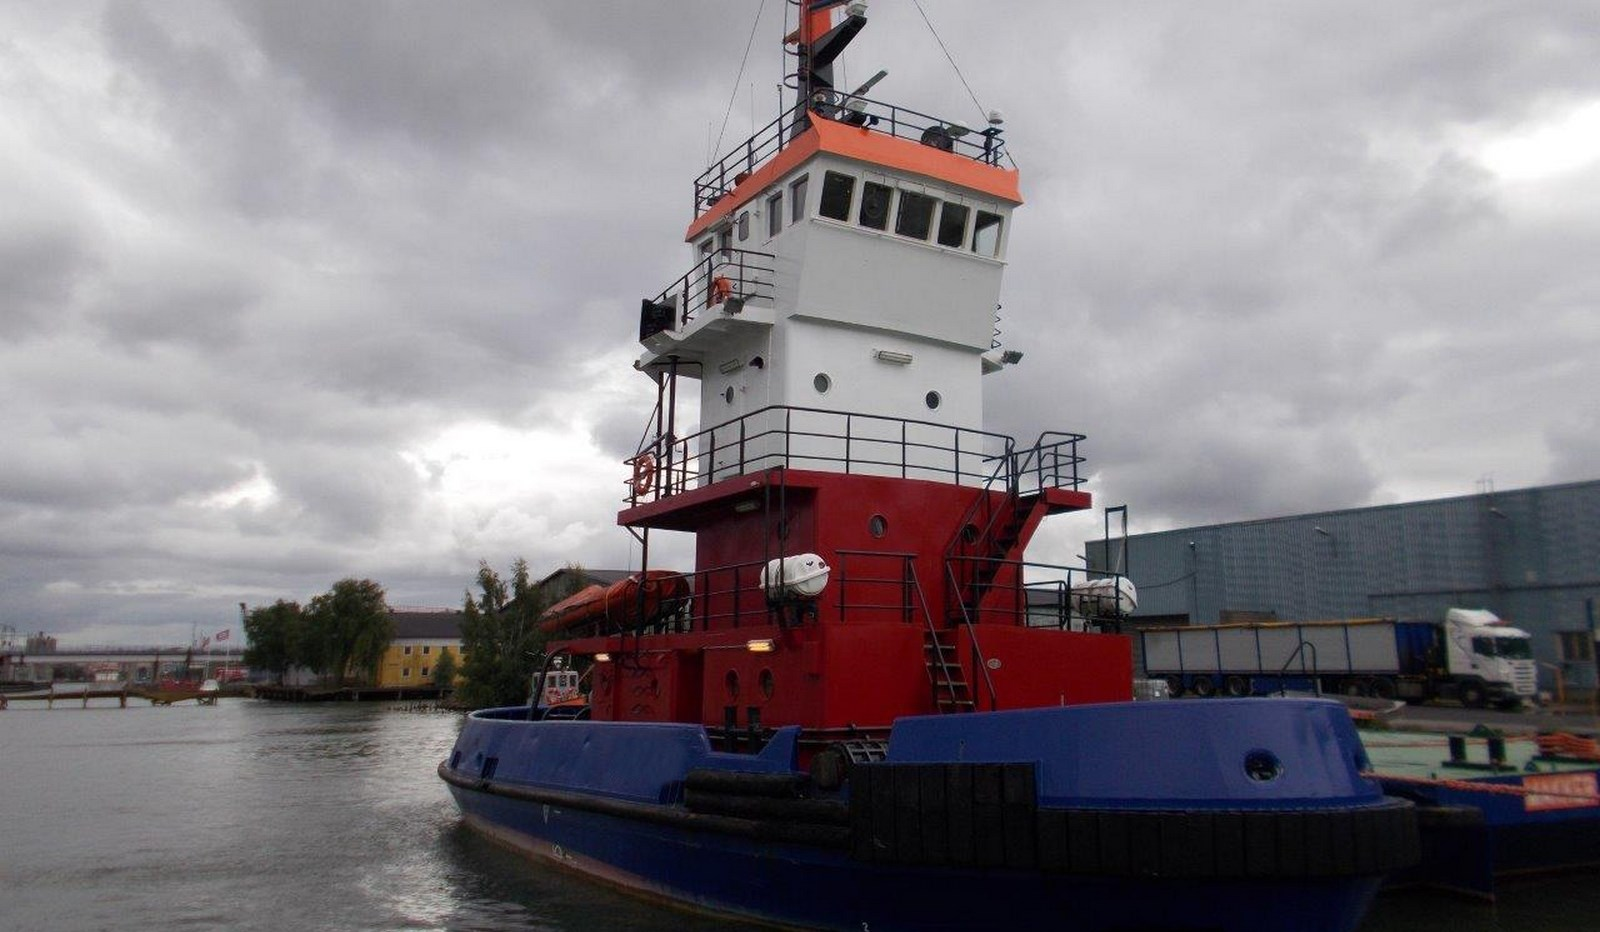 Tug and Barge combination with 20 tons bollard pull and 24 mtrs dimension